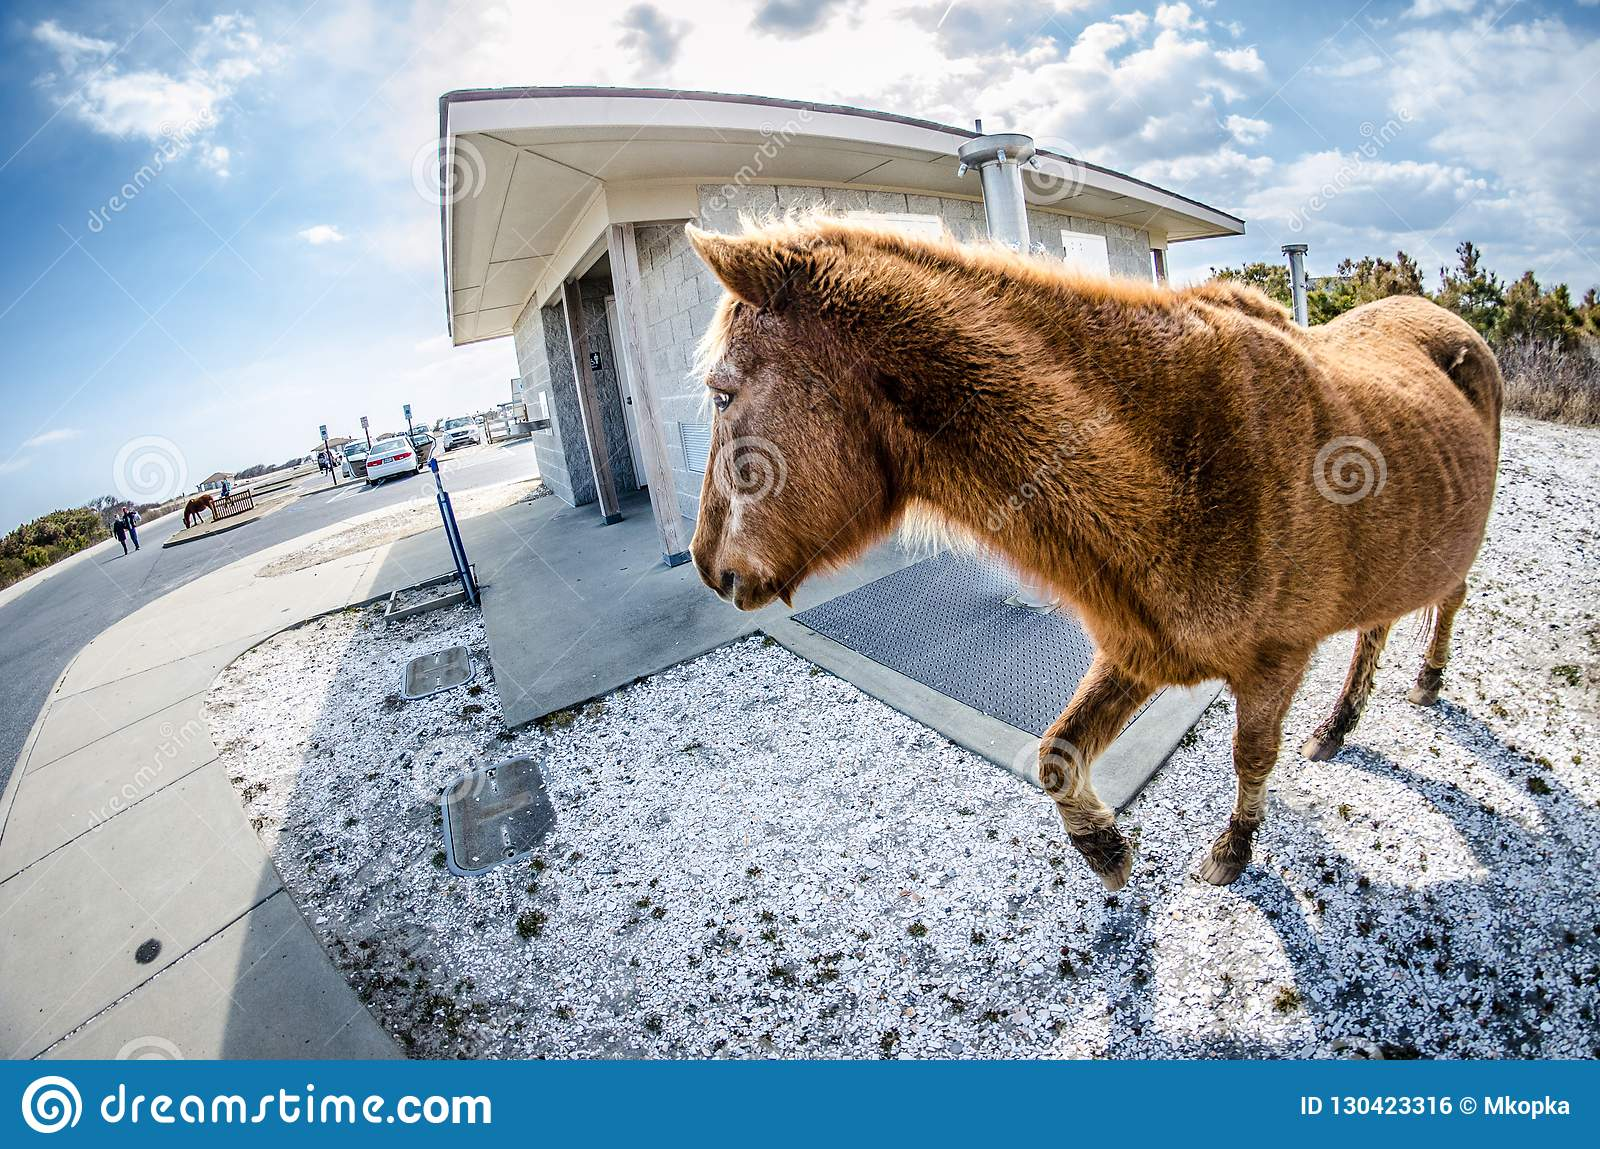 Wild feral horse trots around the public restroom in the parking lot.